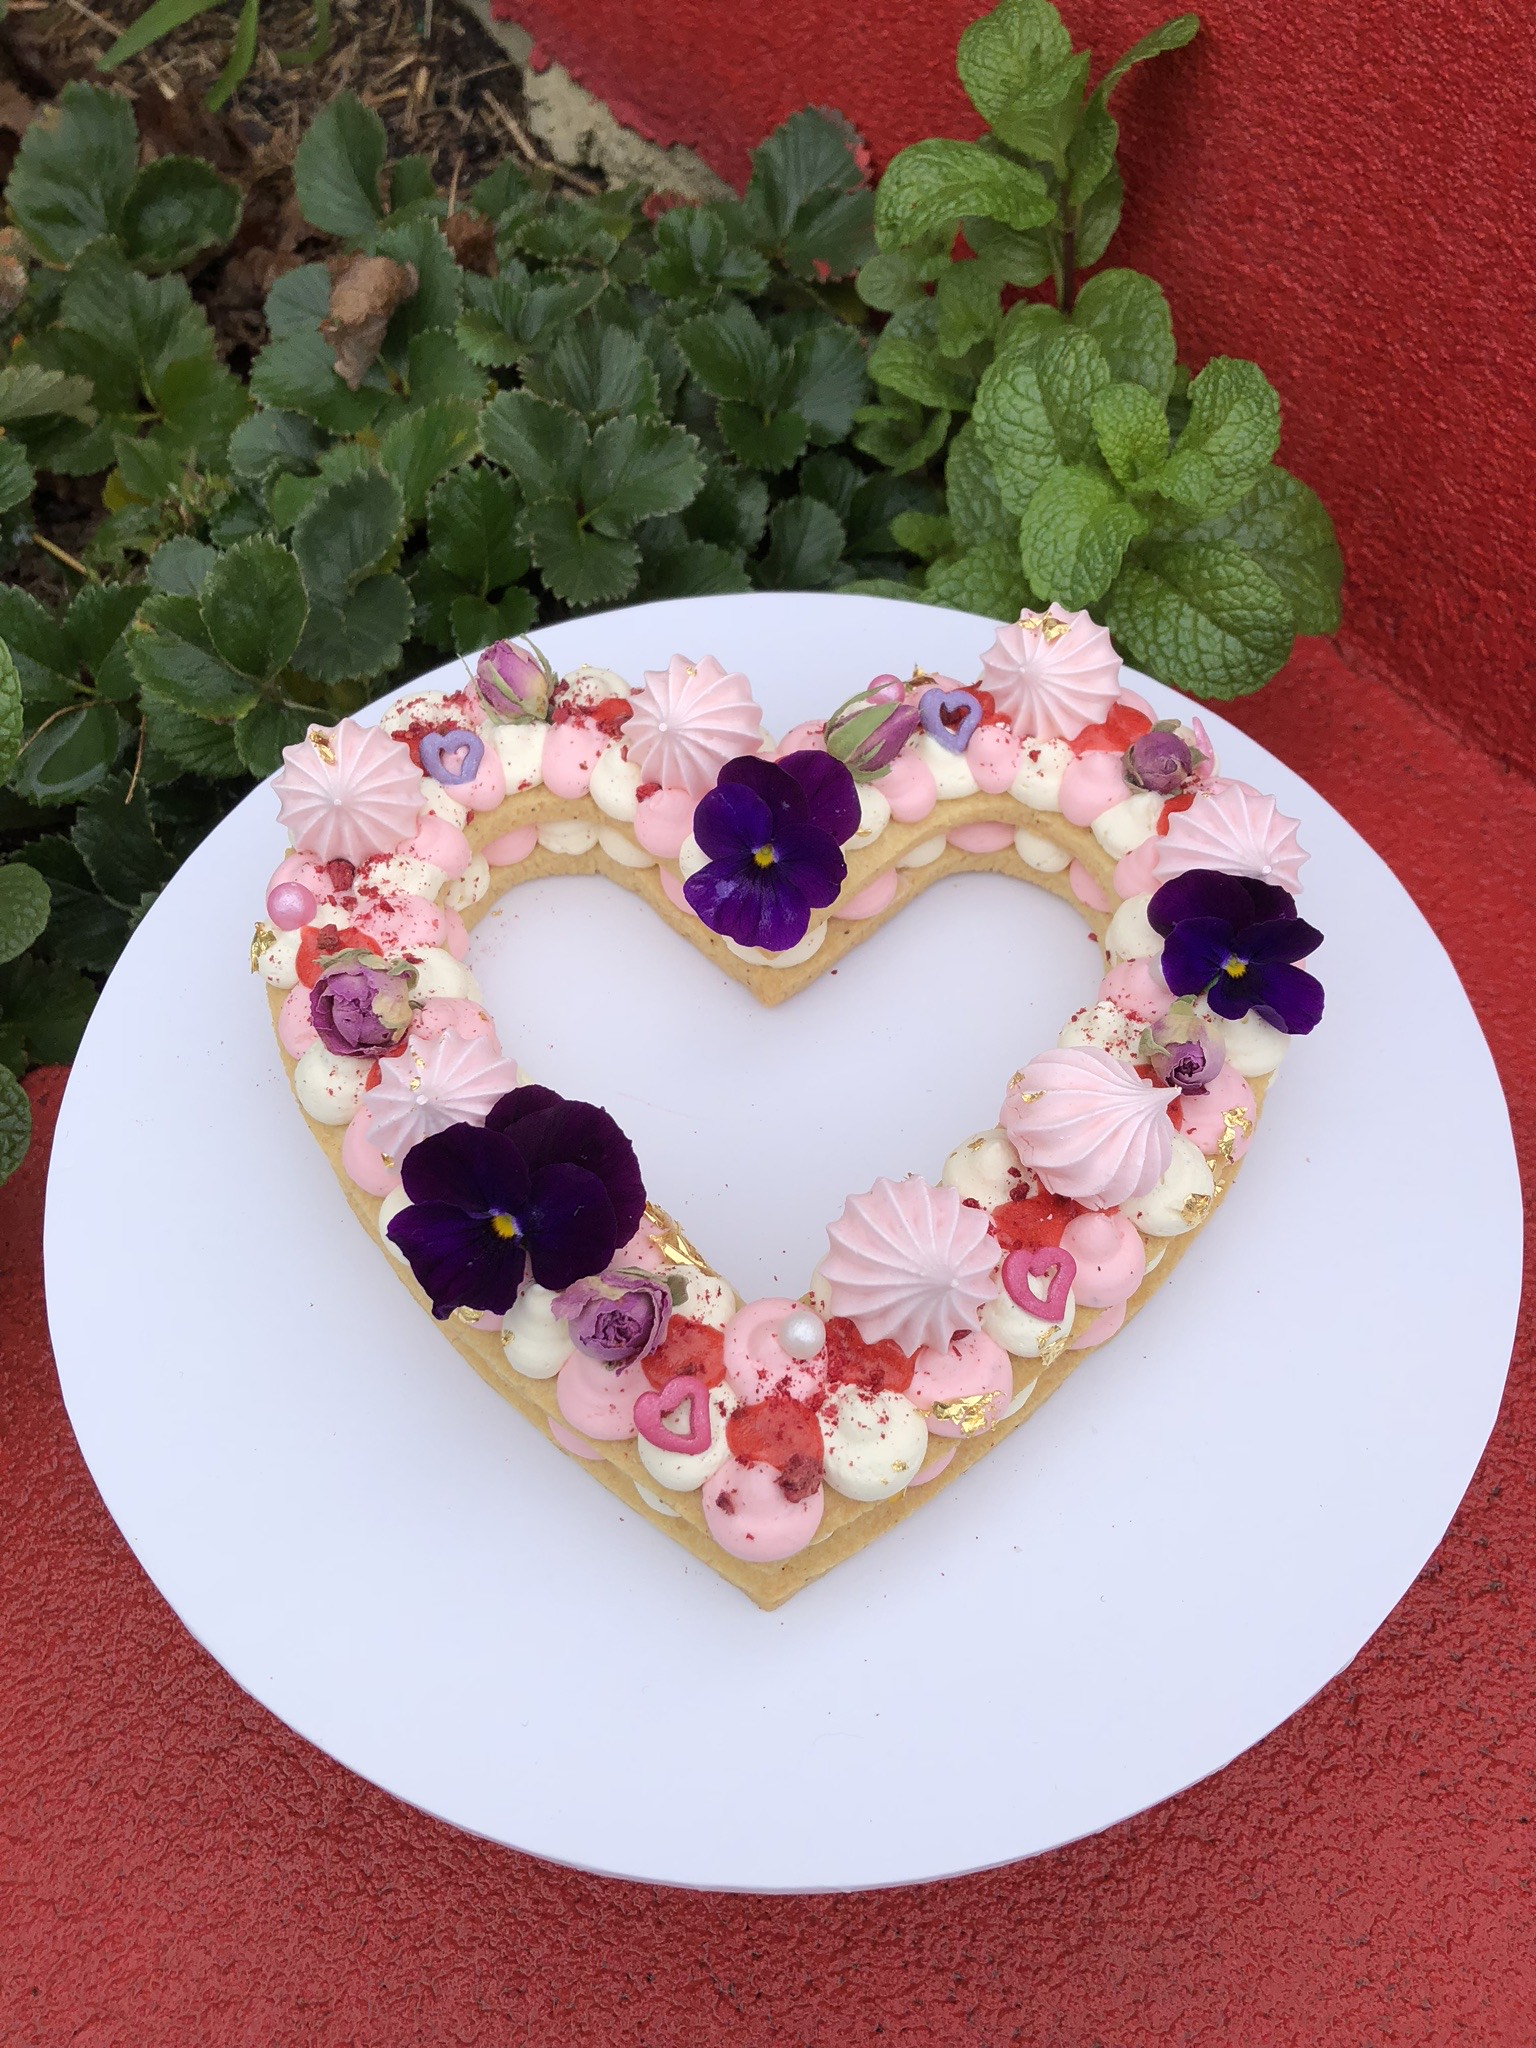 Cookie Cake Medium Heart with Edible Flo